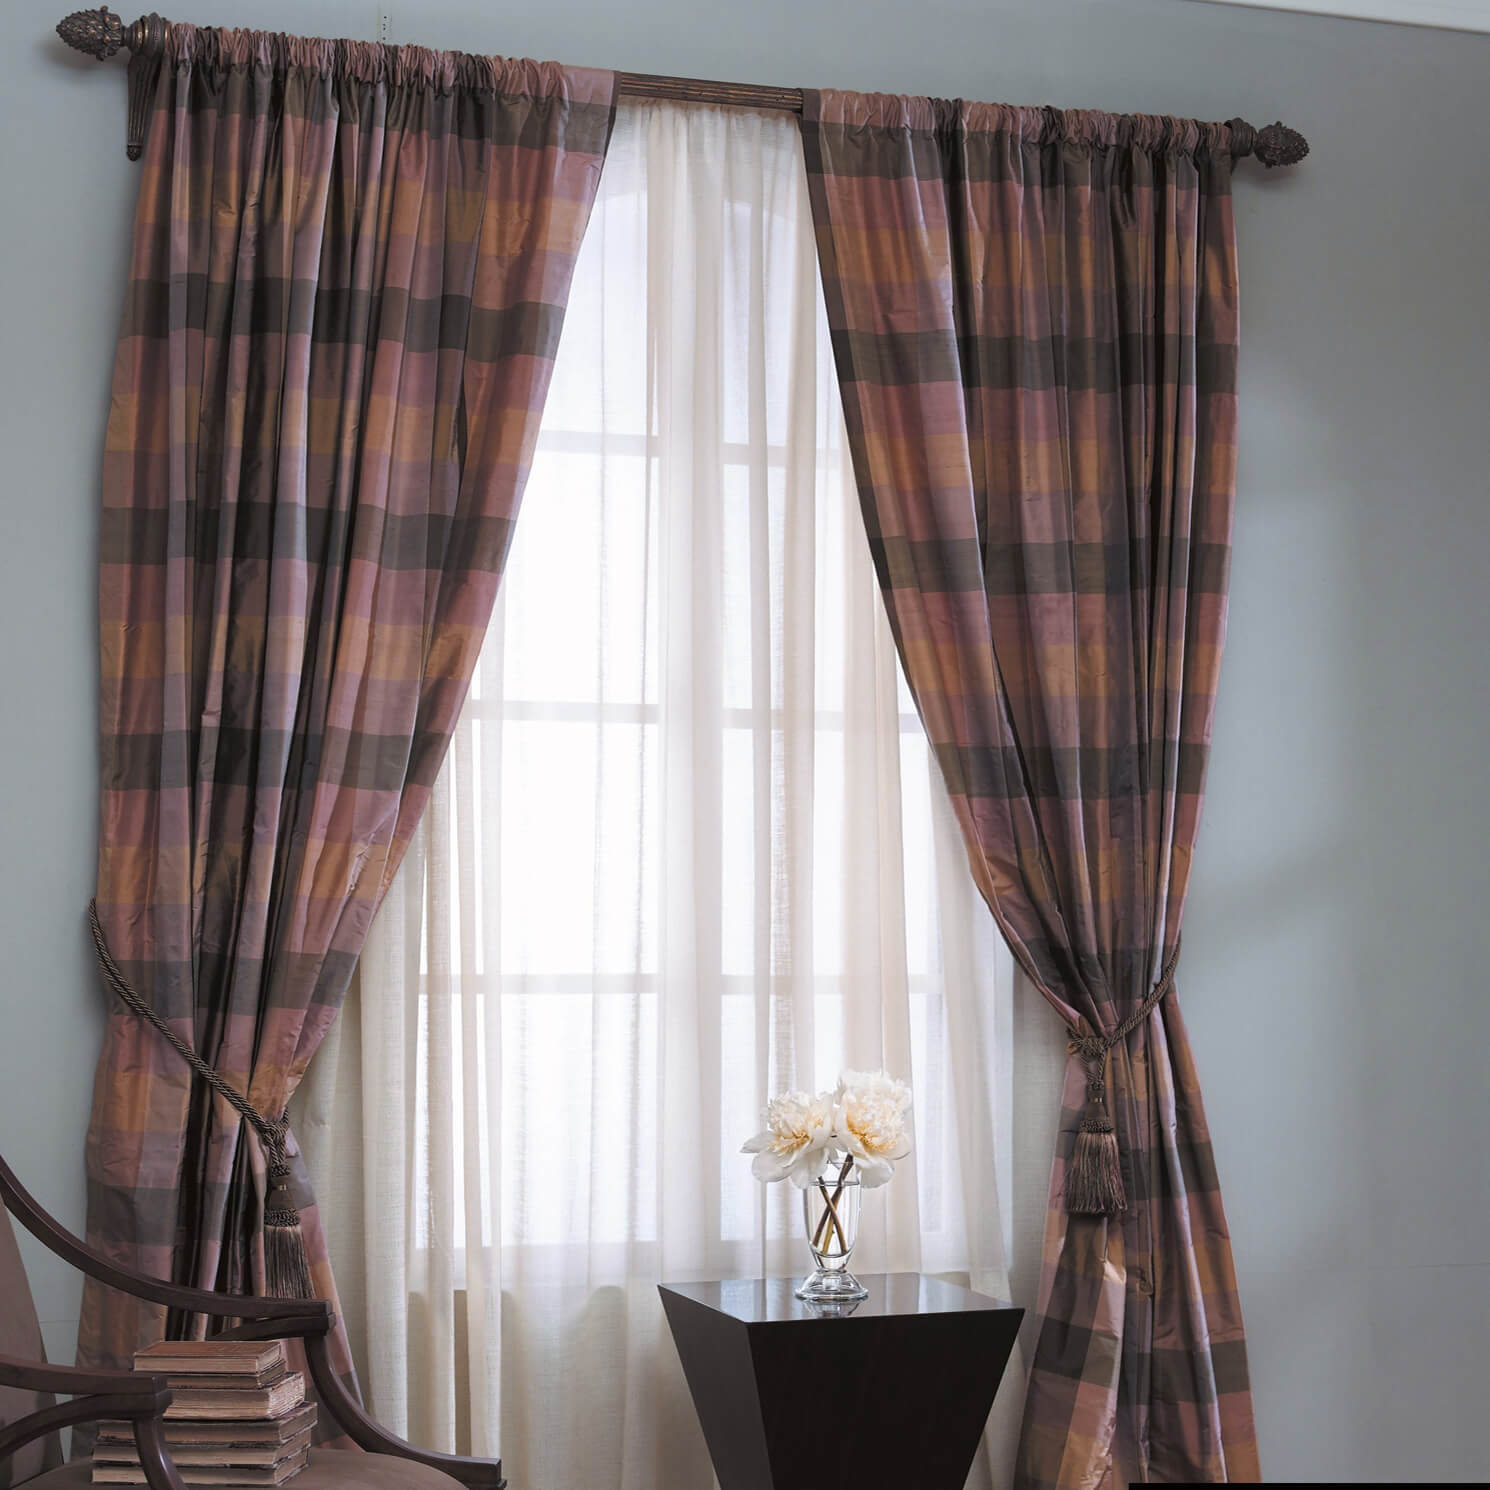 at drapes conference affordable quality and linen tile cloths convention show com prices